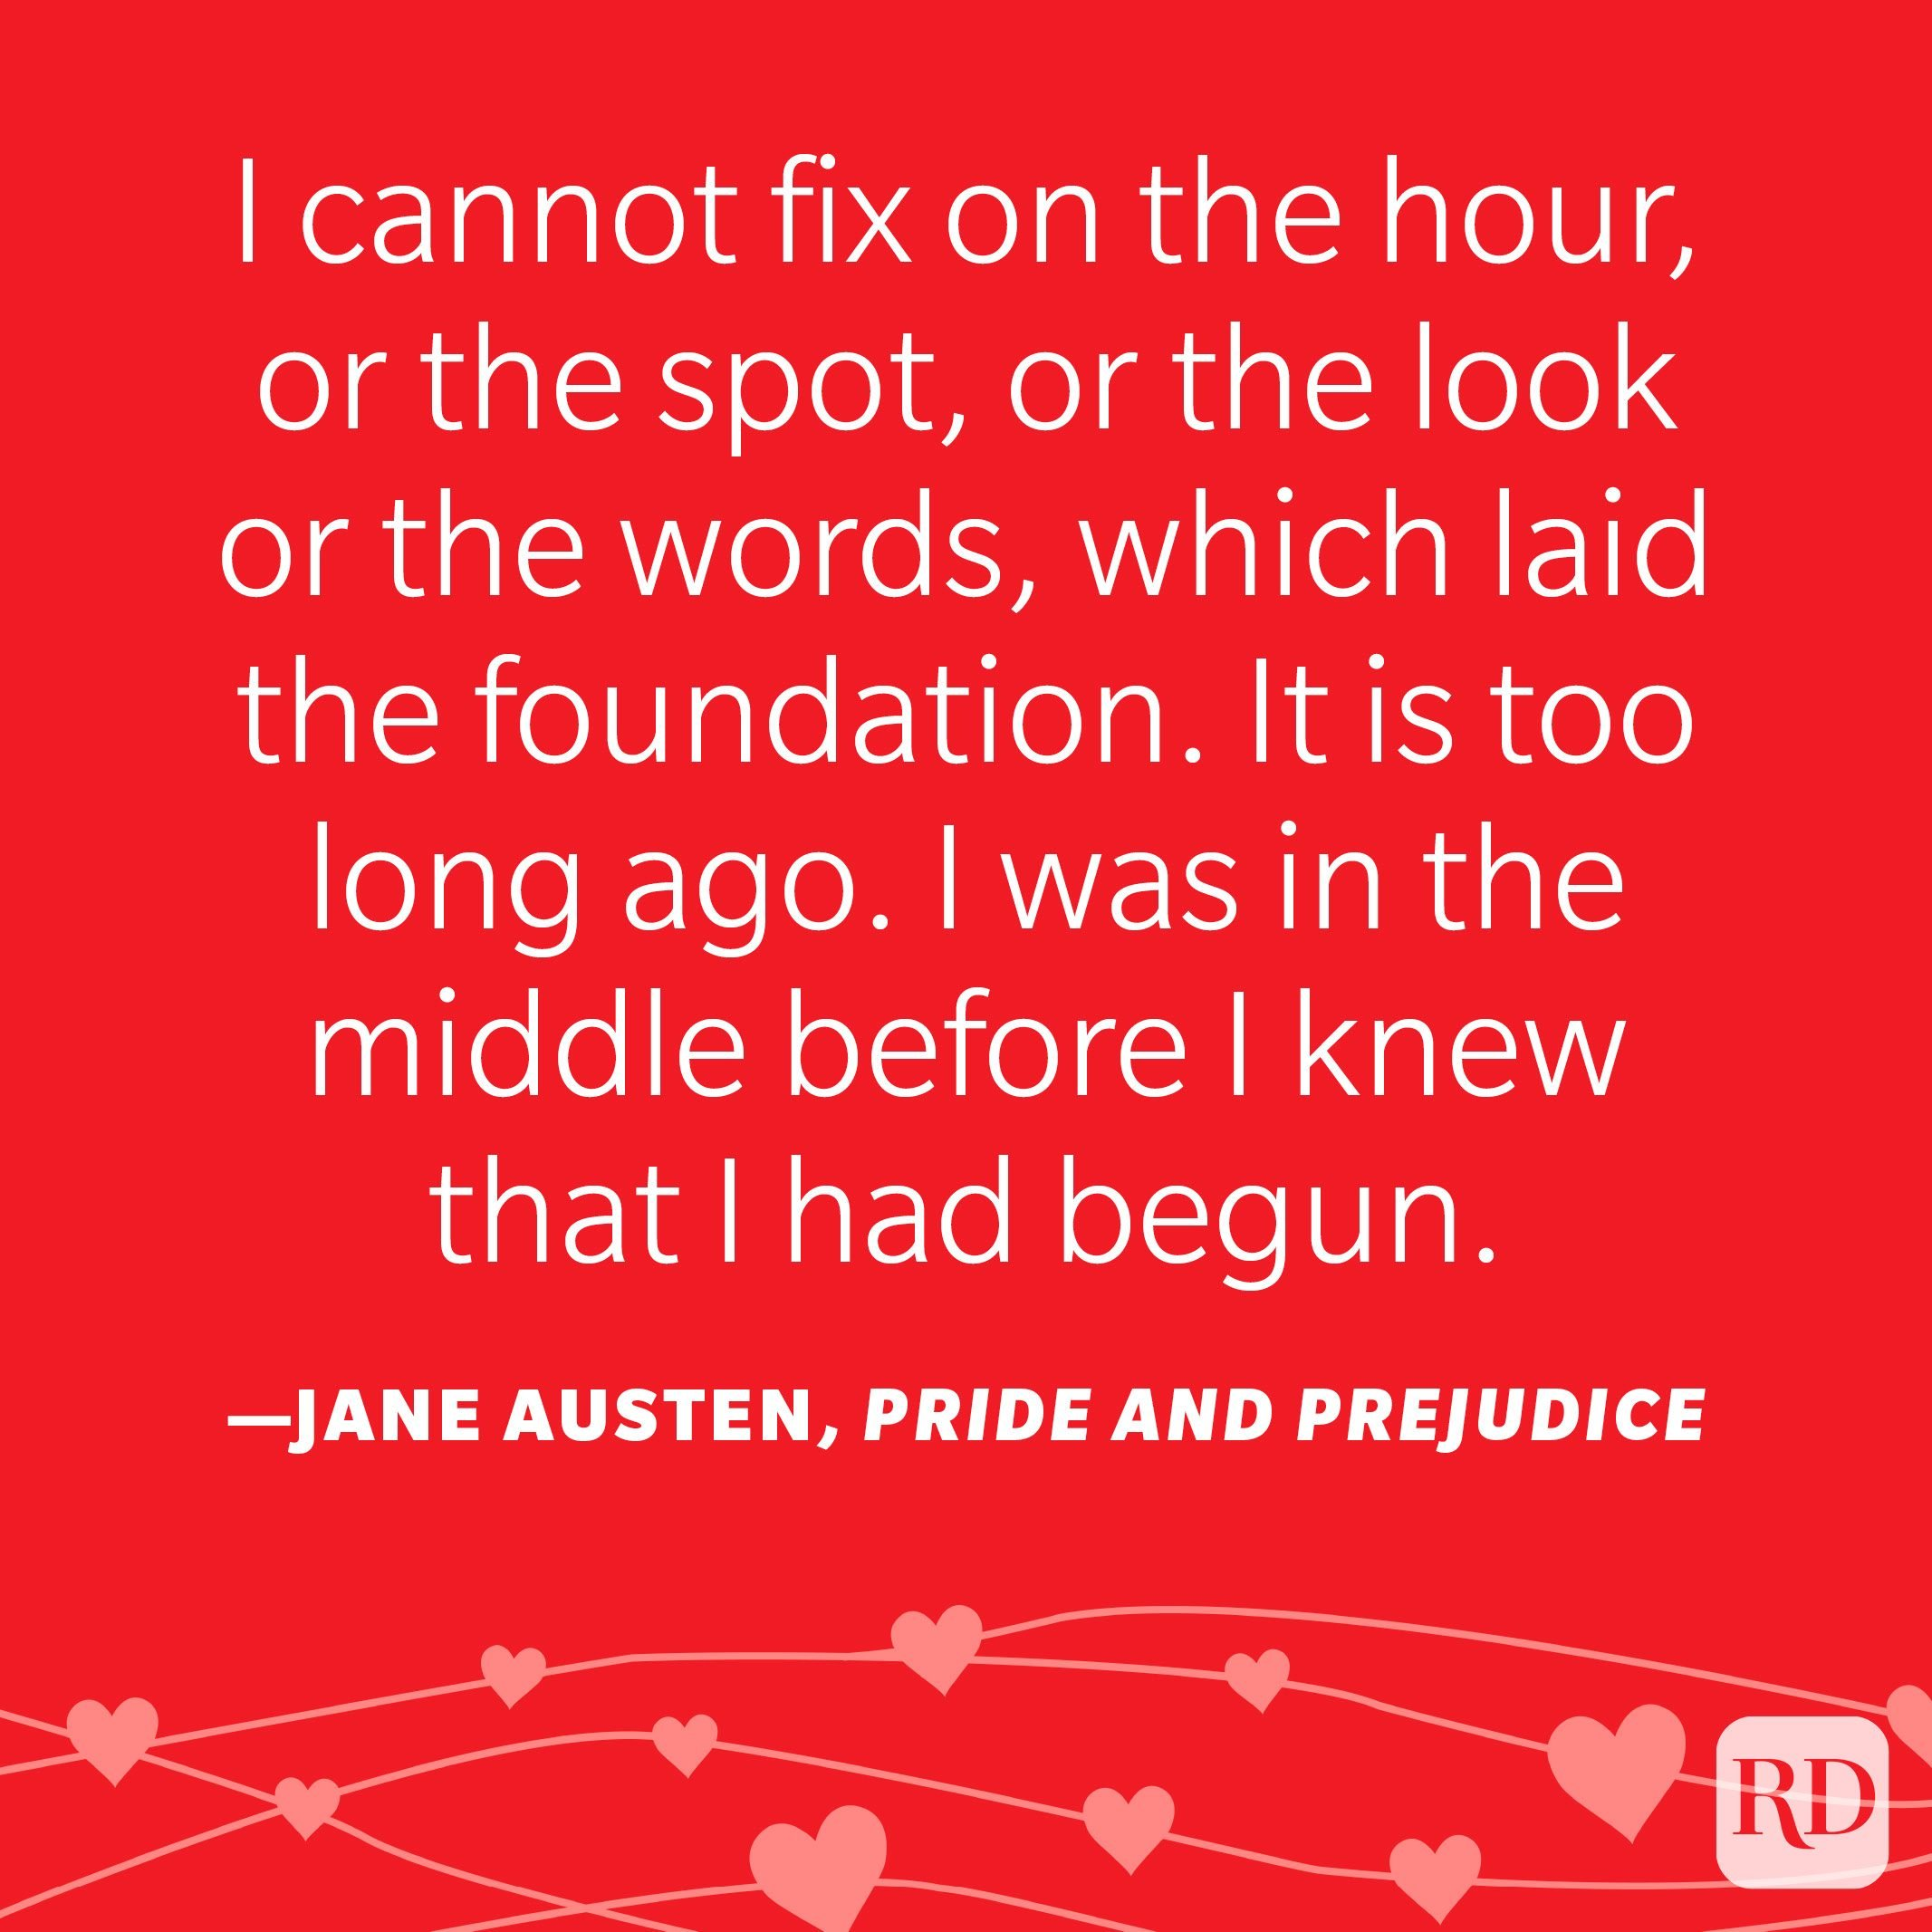 """""""I cannot fix on the hour, or the spot, or the look or the words, which laid the foundation. It is too long ago. I was in the middle before I knew that I had begun."""" ―Jane Austen, Pride and Prejudice"""